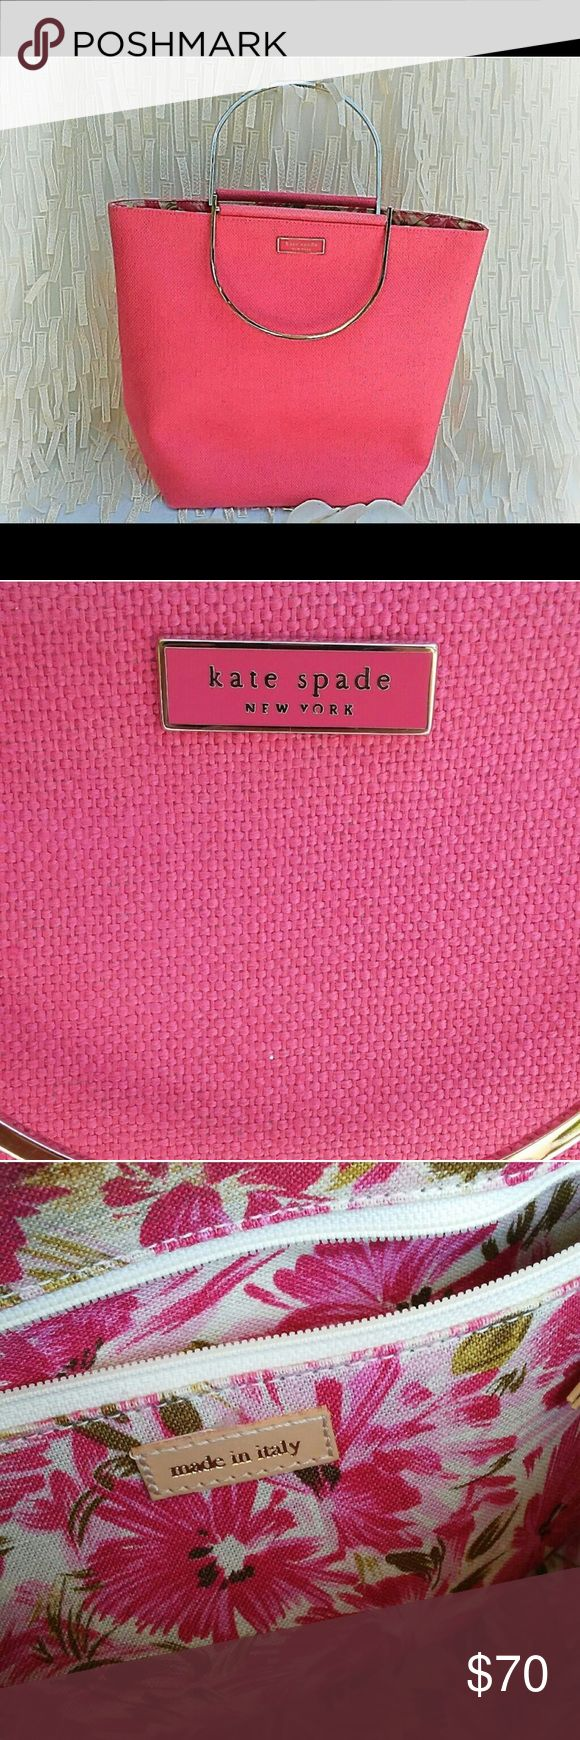 """Kate Spade linen tote Palm Beach punk Kate Spade tote in perfect condition.  Handle drop is 3.75"""".10.75"""" high. 12.5"""" wide x 4.5"""" deep. kate spade Bags Totes"""